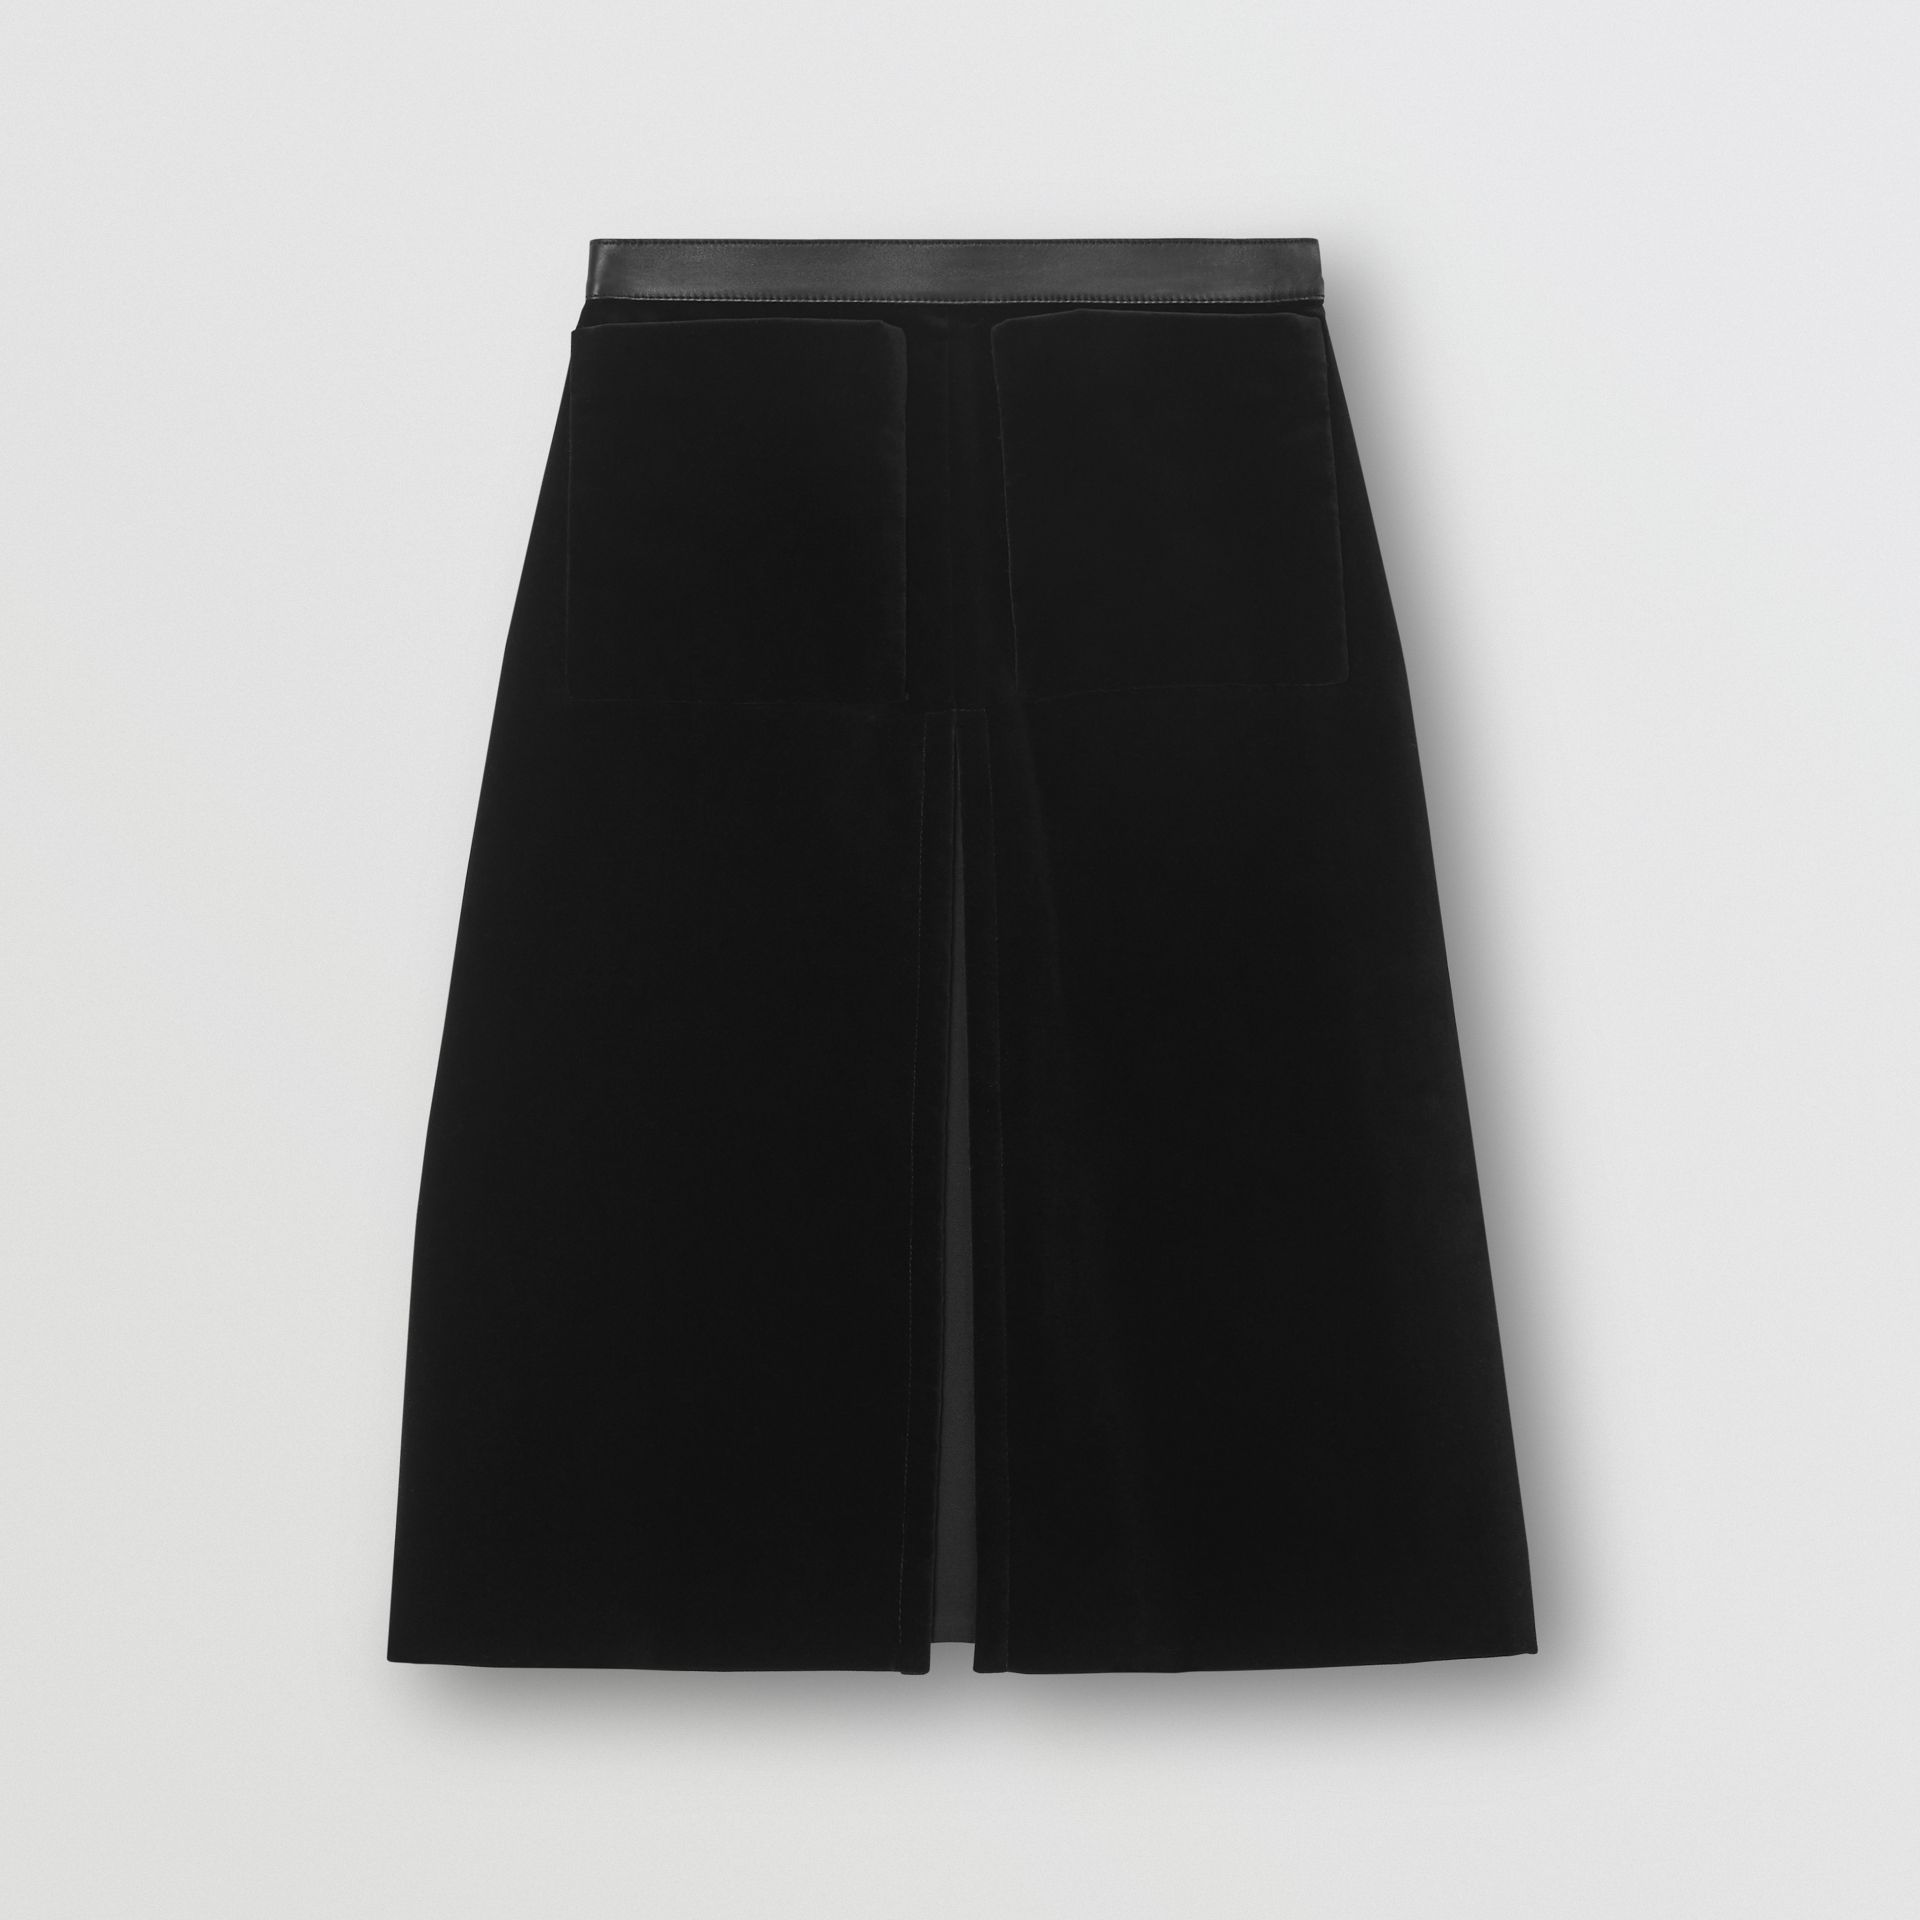 Lambskin Trim Box Pleat Detail Velvet and Wool Skirt in Black - Women | Burberry - gallery image 2